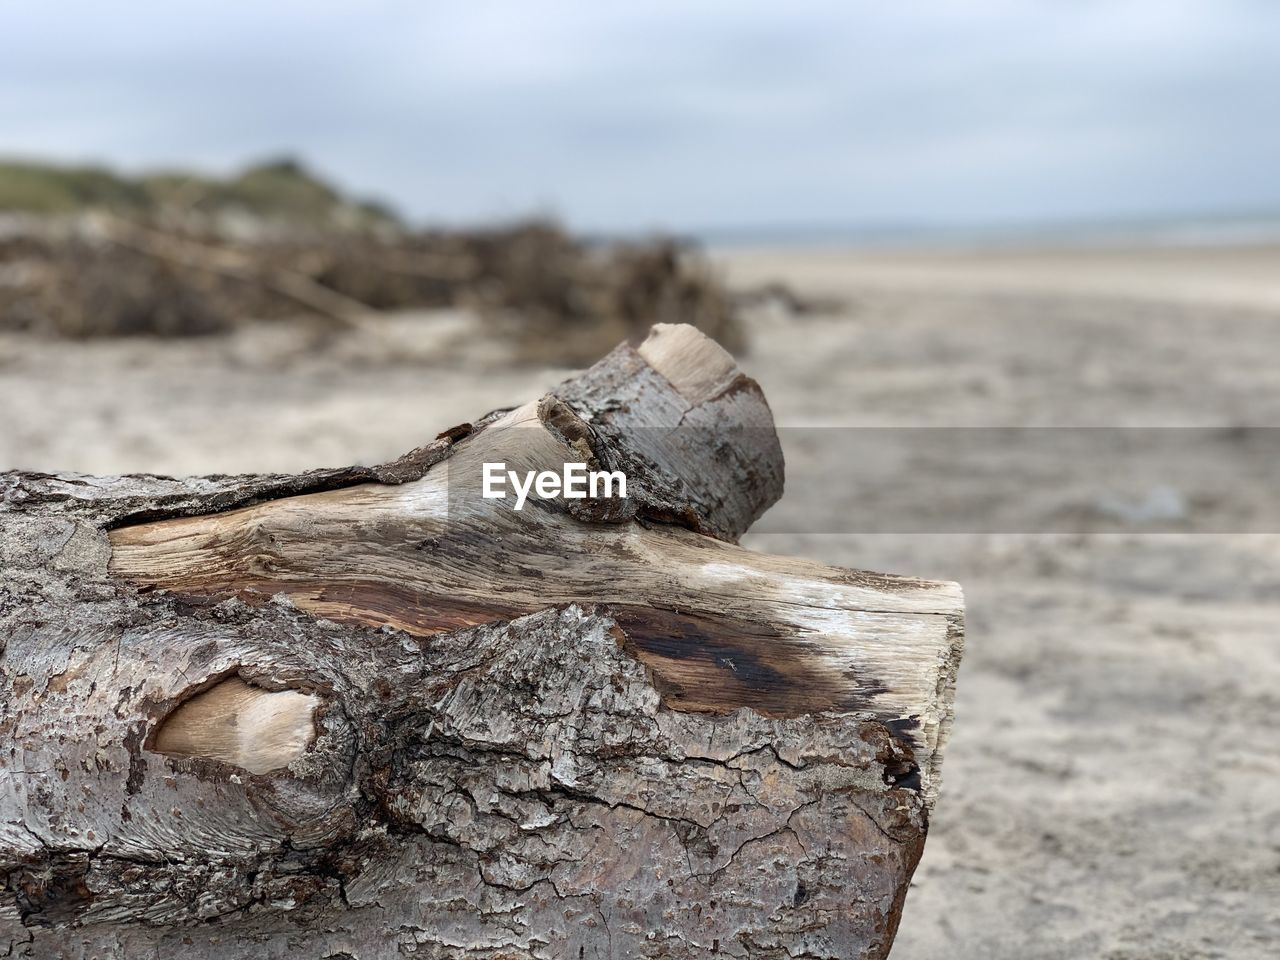 wood - material, land, focus on foreground, wood, nature, tree, close-up, log, beach, timber, no people, day, outdoors, sand, sky, driftwood, textured, tranquility, deforestation, selective focus, bark